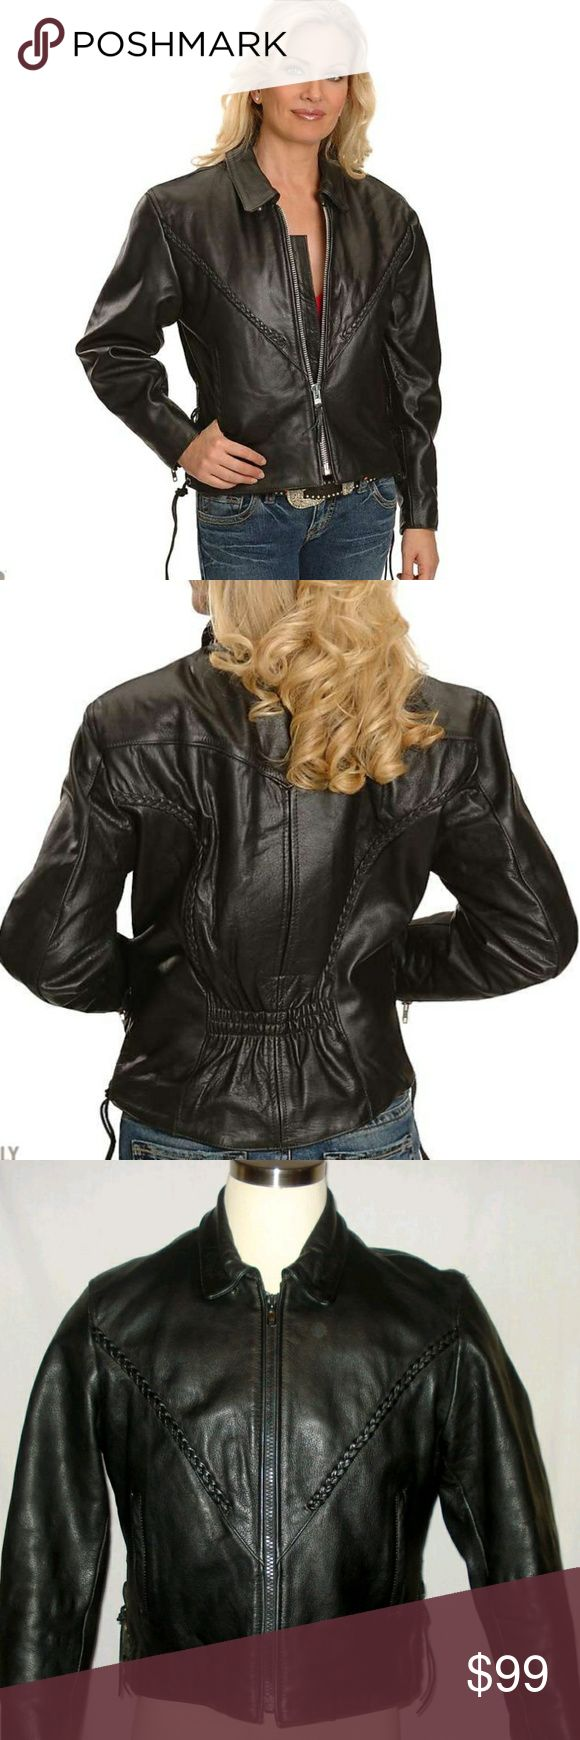 Interstate Leather Women's Motorcycle Jacket Minor wear. No tears. Nothing sets the standard in motorcycle apparel quite like a leather motorcycle jacket, and this jacket from Interstate Leather by Milwaukee is quality leatherwear at its finest. A milwaukee motorcycle jacket is for the women with discerning taste, who refuses to sacrific comfort but also wont settle for blending into the crowd. Comfortable, classic and undeniably cool, this provides the kind of easy wearability that is sure…